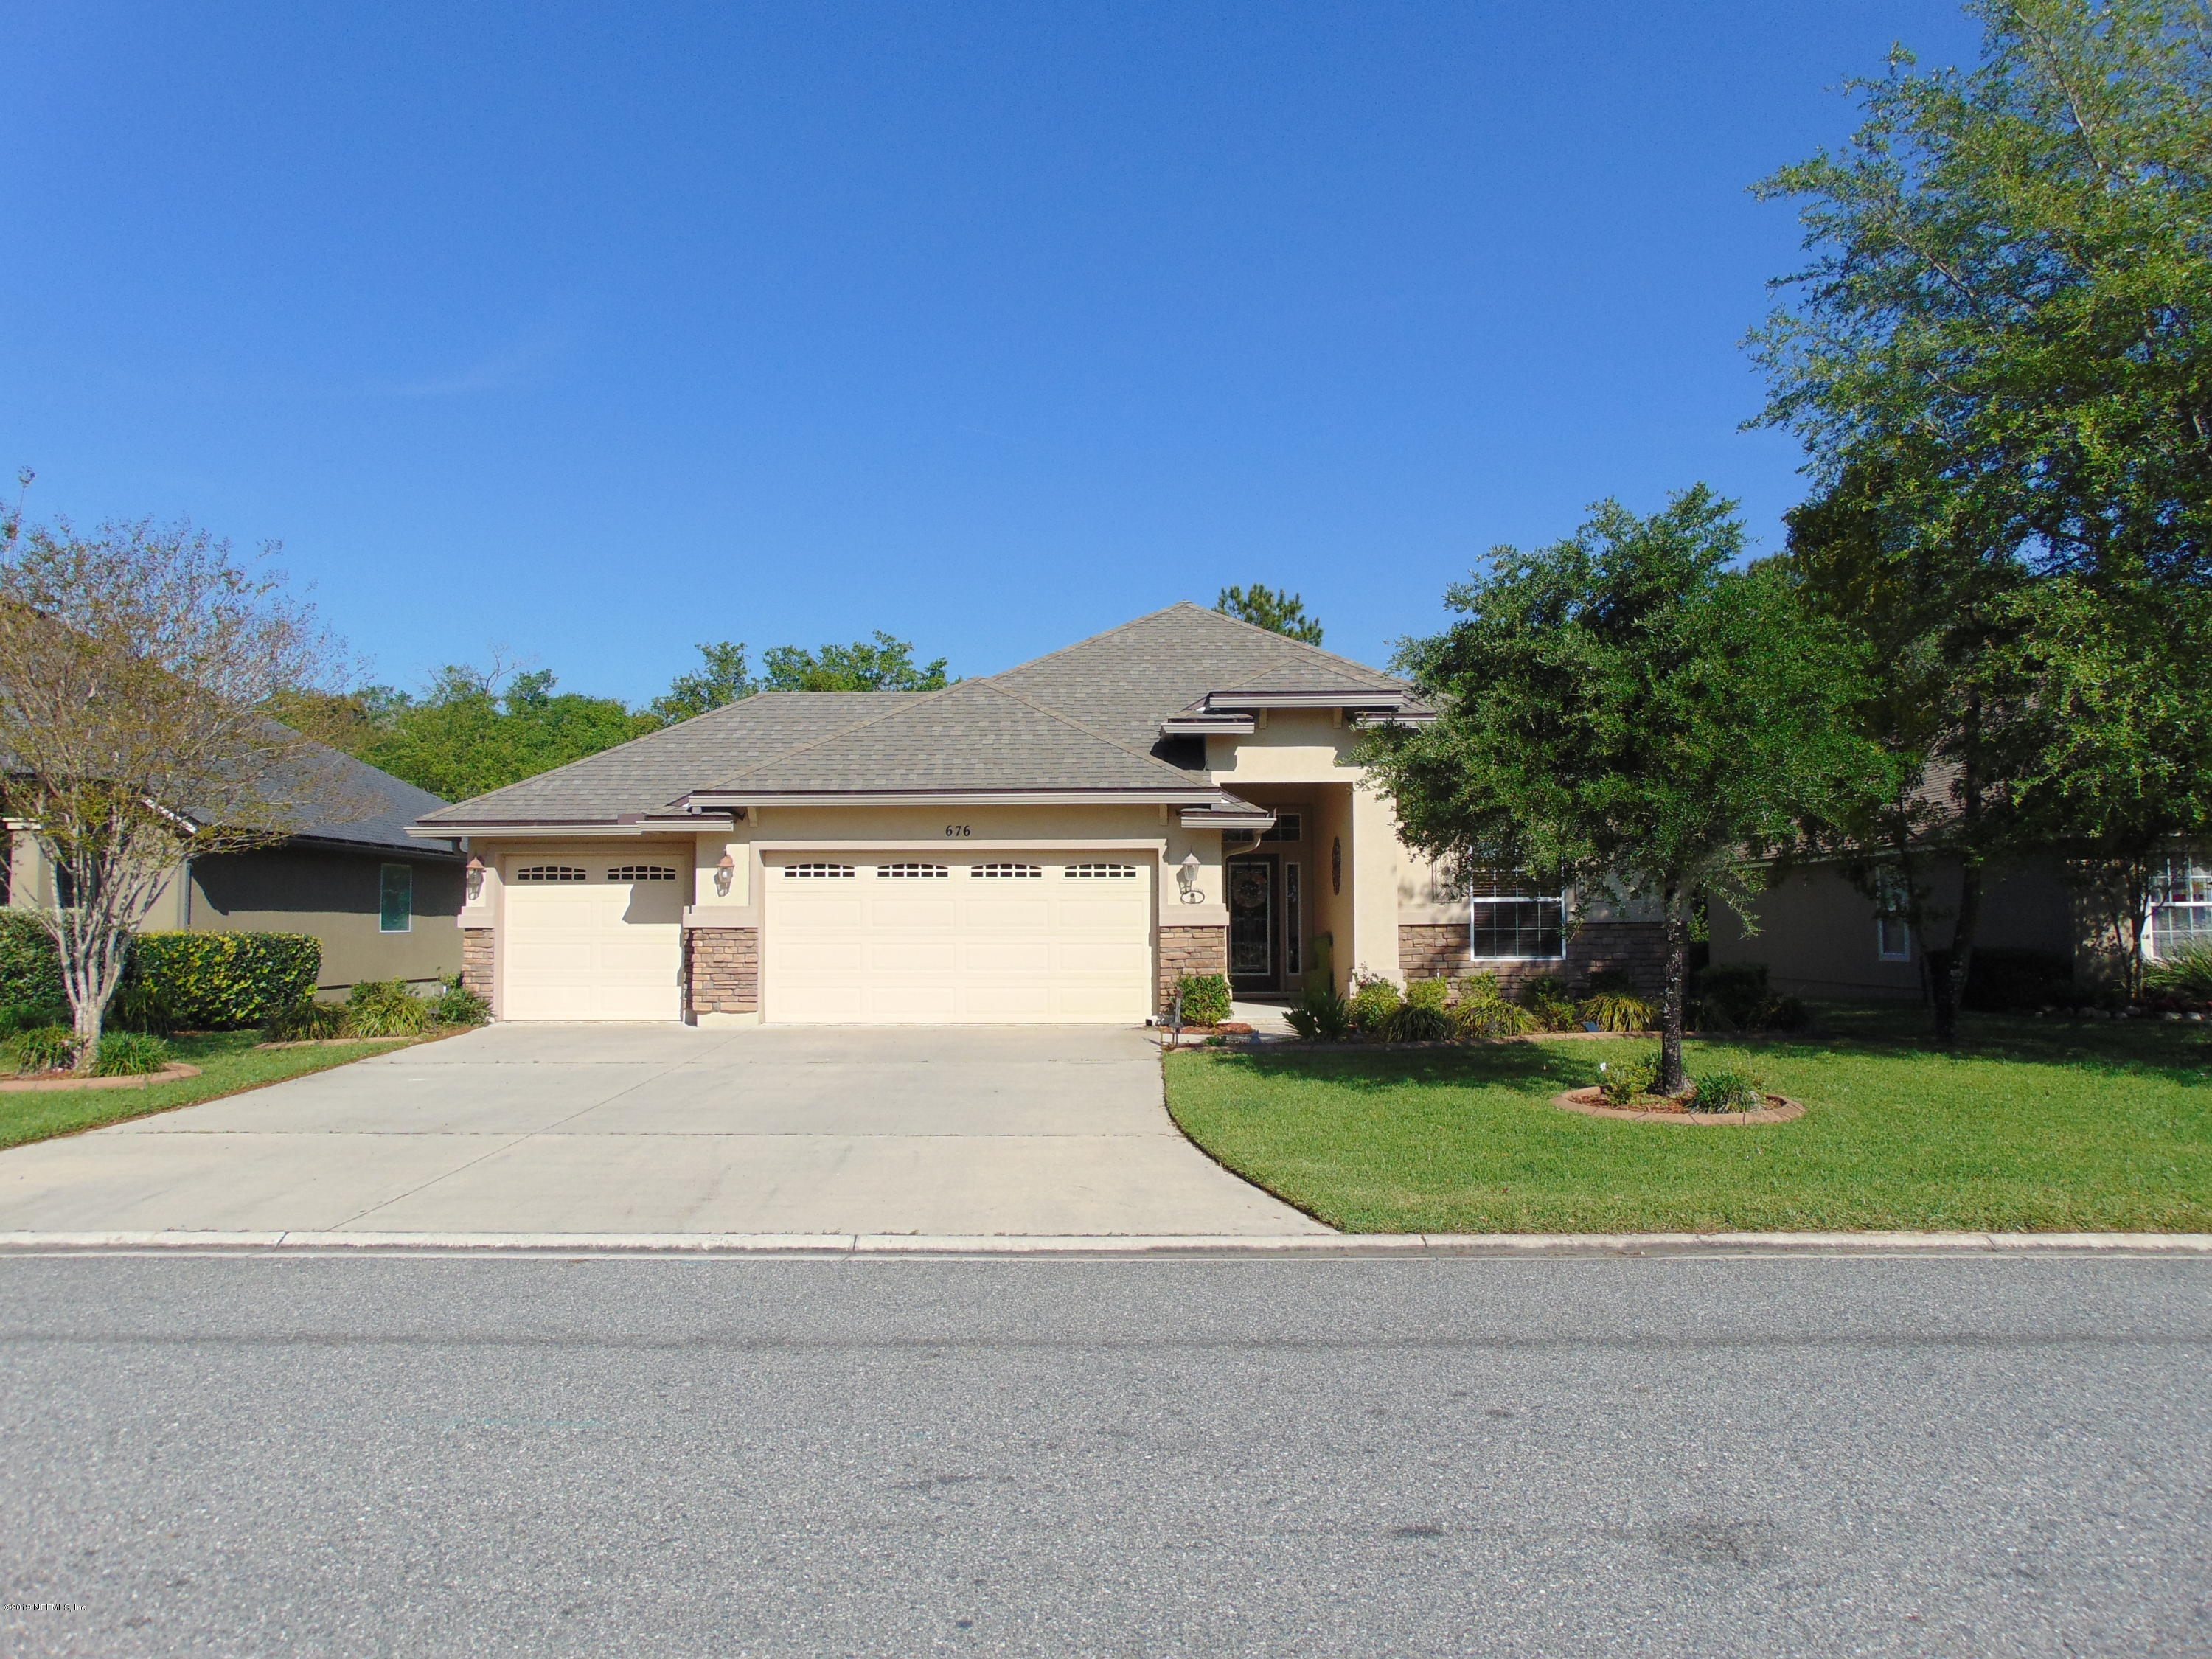 676 CHESTWOOD CHASE, ORANGE PARK, FLORIDA 32065, 4 Bedrooms Bedrooms, ,3 BathroomsBathrooms,Residential - single family,For sale,CHESTWOOD CHASE,989856